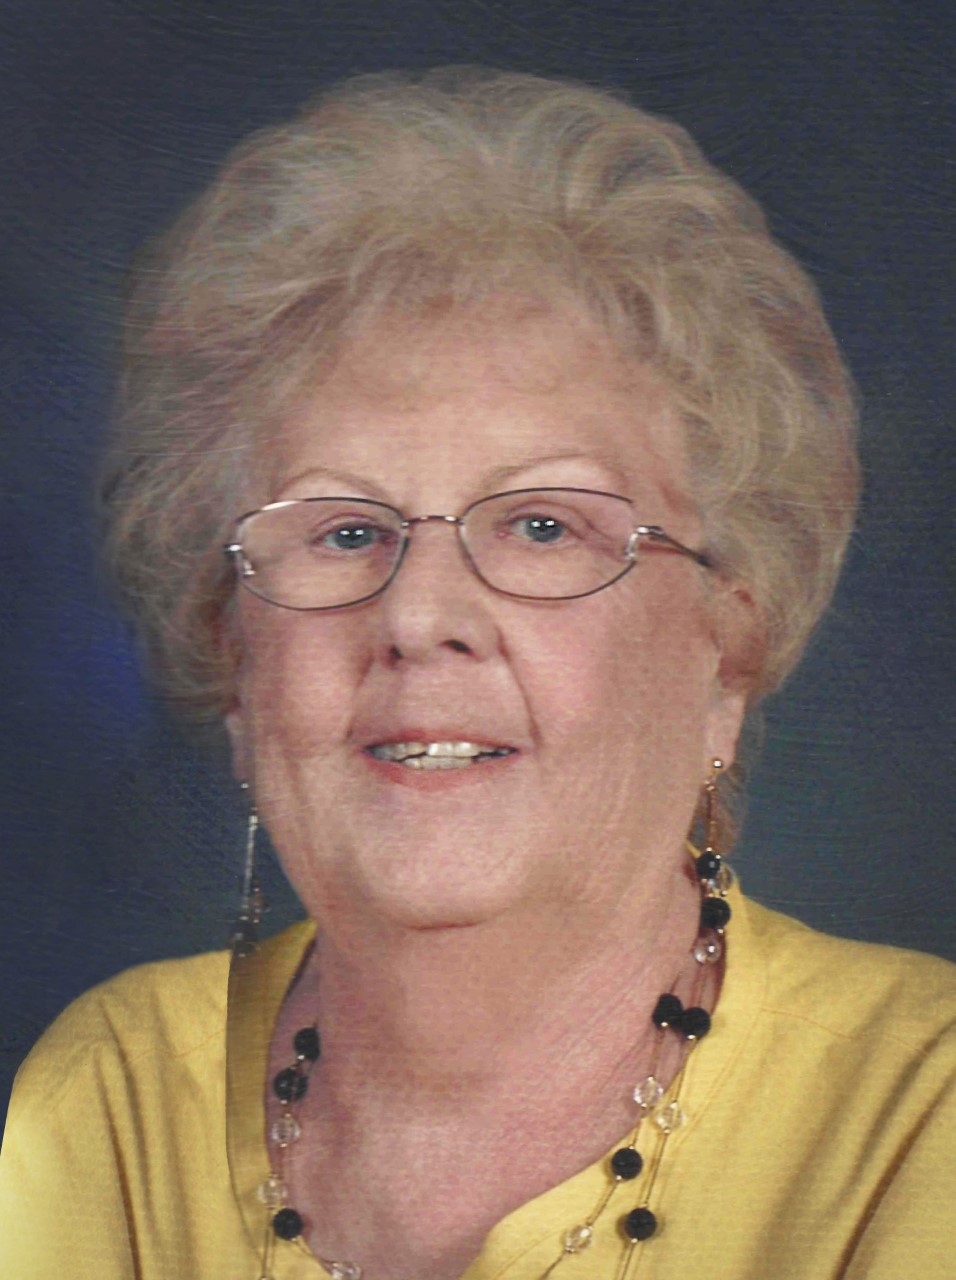 Fran Kassmeier, age 87, of Dodge, Nebraska